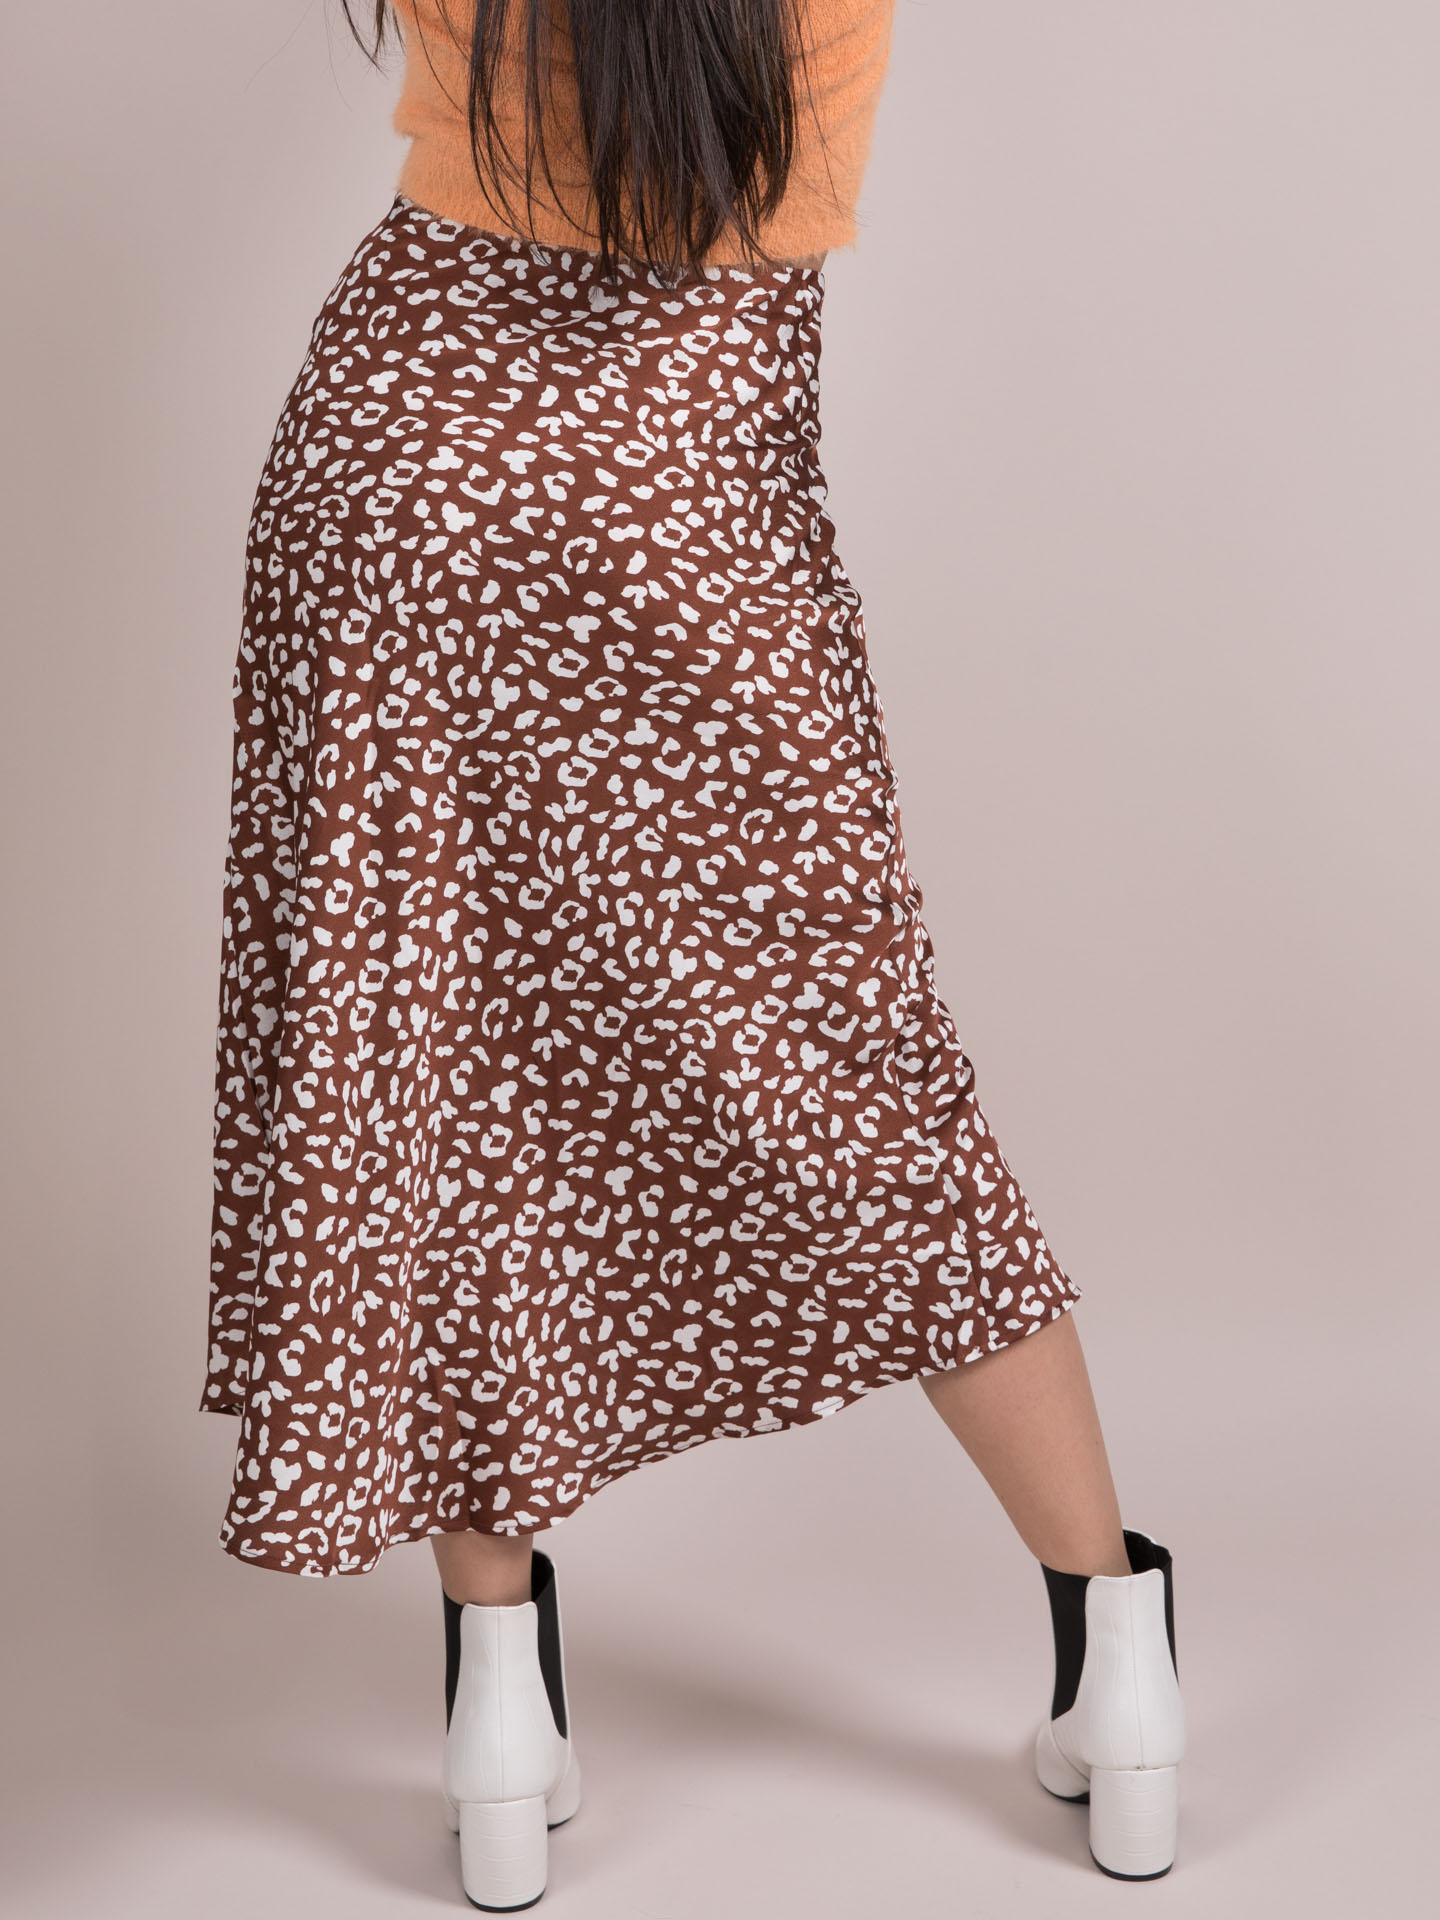 Kayla Spot Skirt Satin Midi Spotted Back